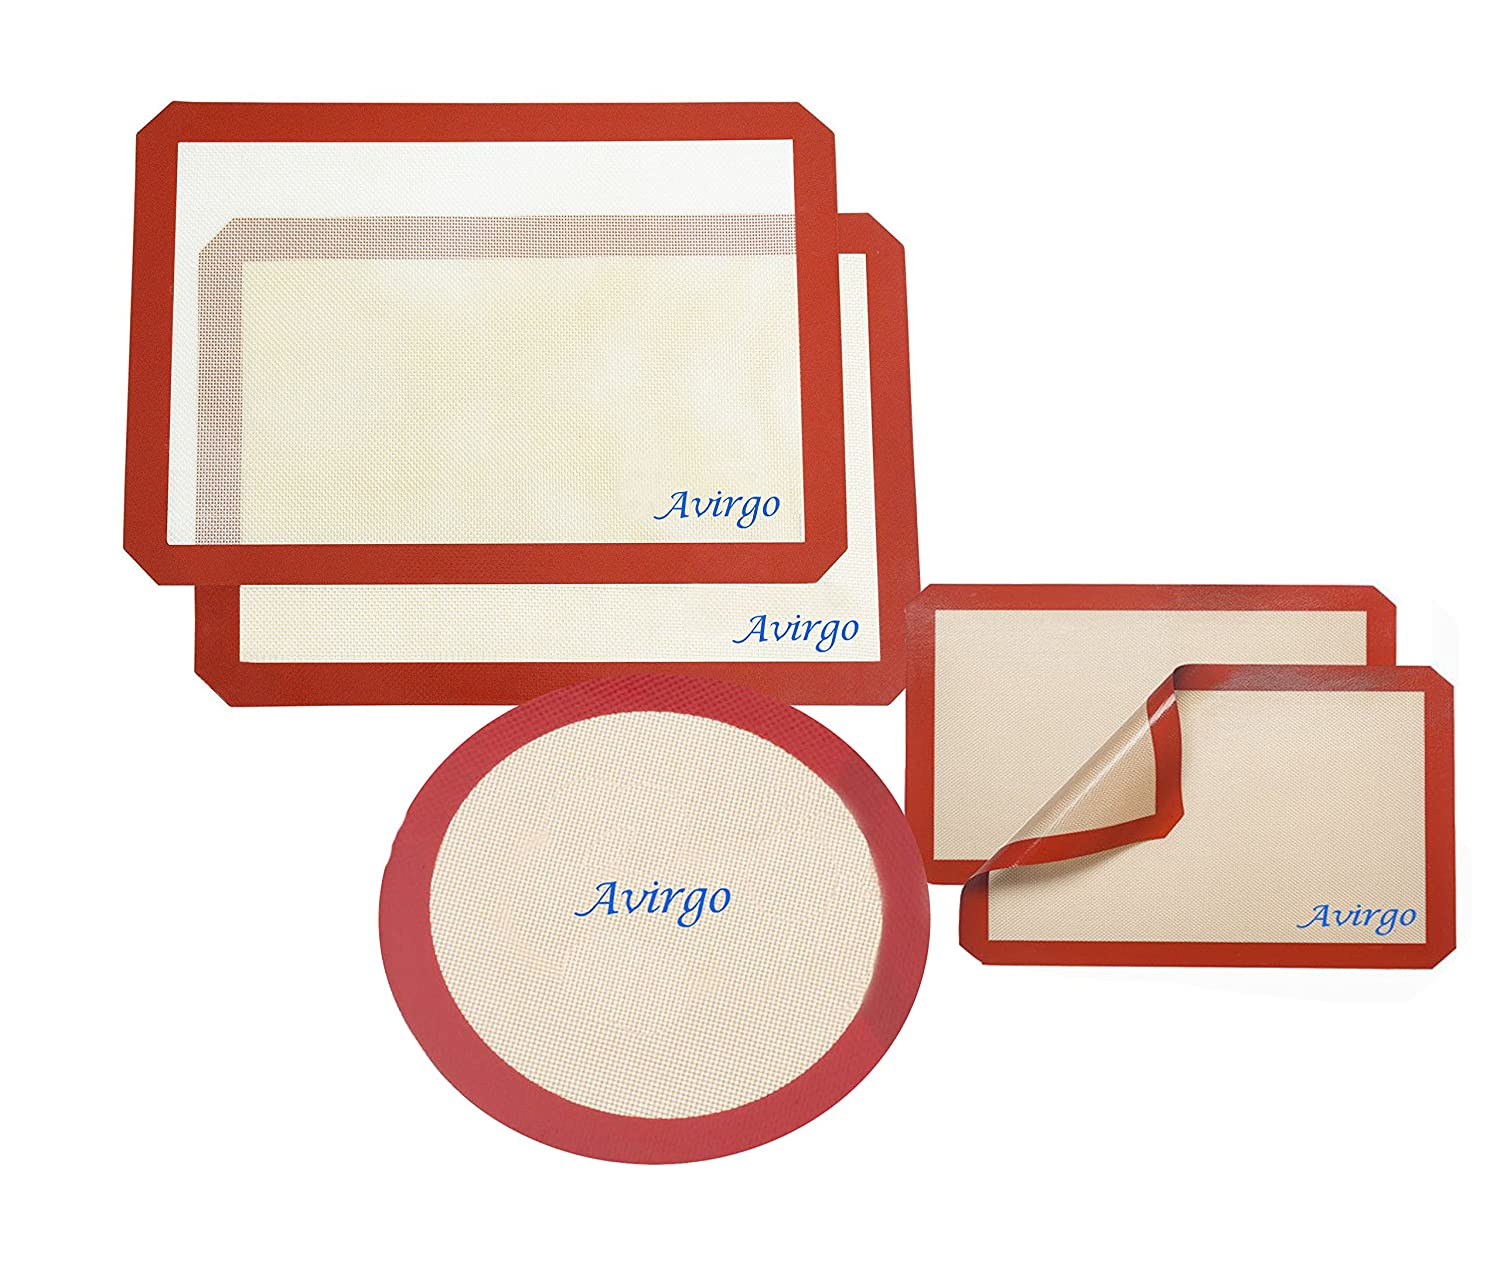 AVIRGO Silicone Baking Matプロフェッショナルグレードテフロン加工のシリコンLiner forベイクPans &ローリング round + 20x30 + 30x40 PN1 B078H7KN1S   round + 20x30 + 30x40